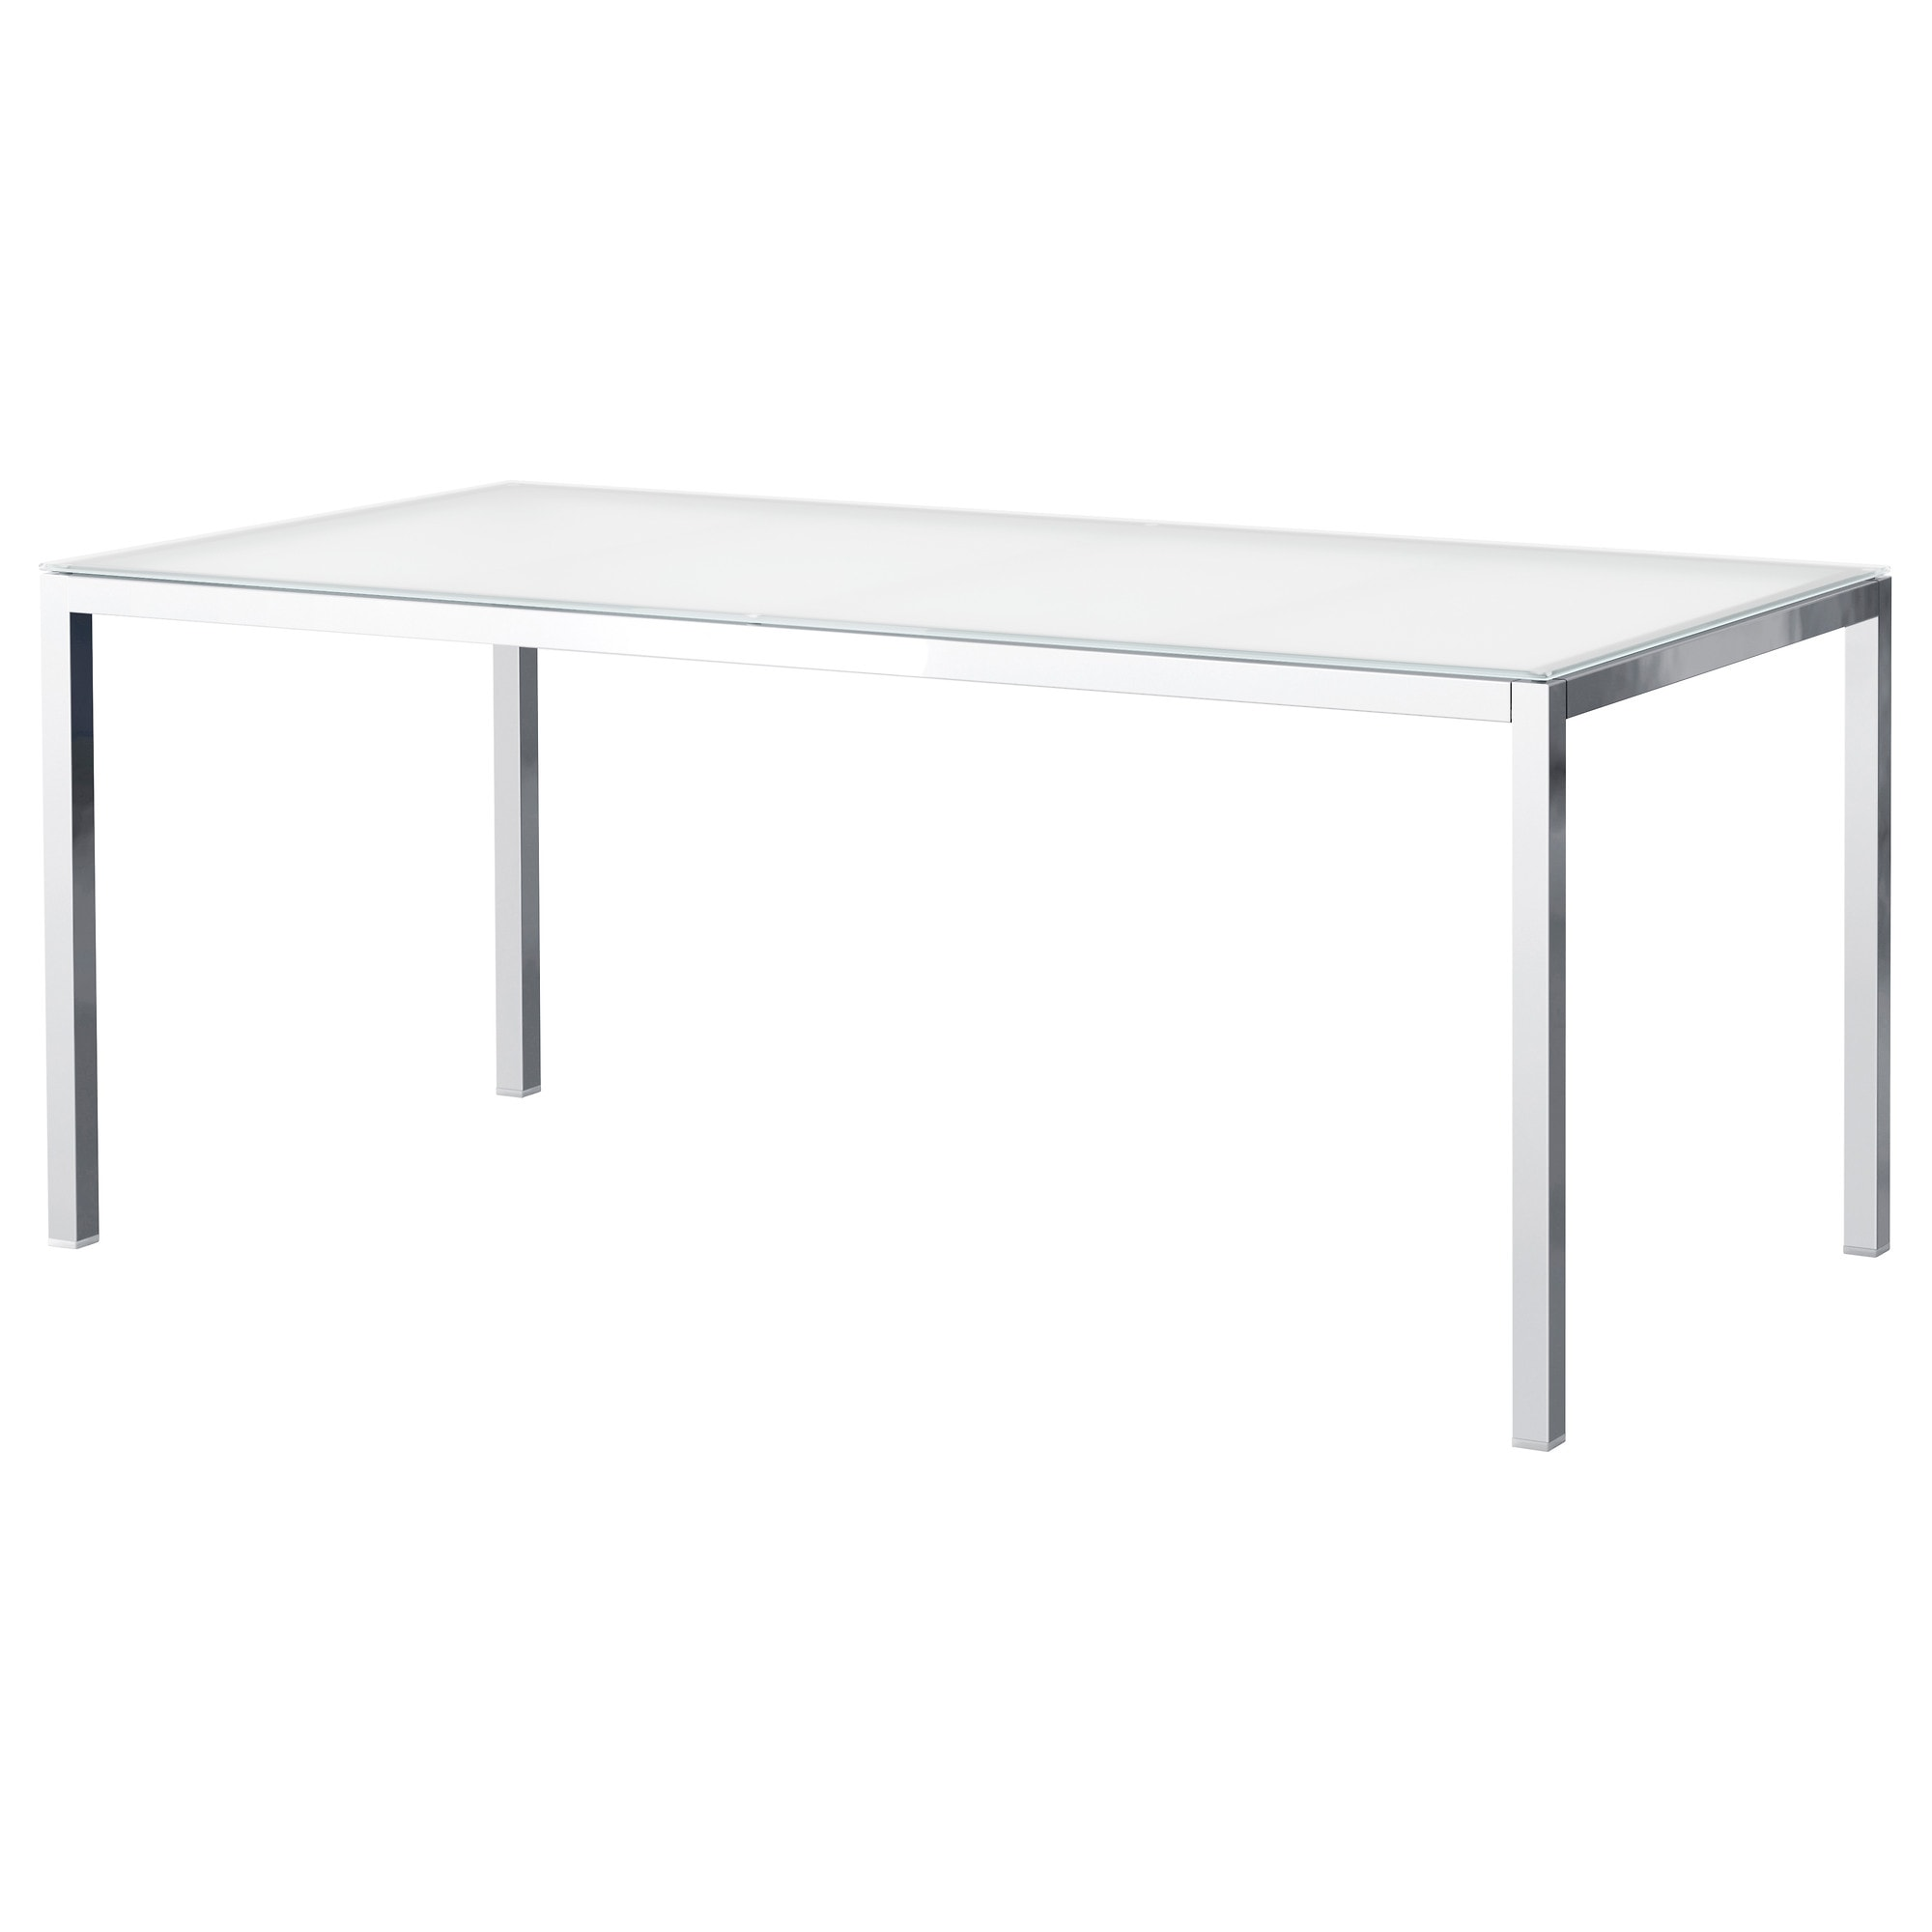 Table En Verre Salle A Manger Ikea Table De Lit